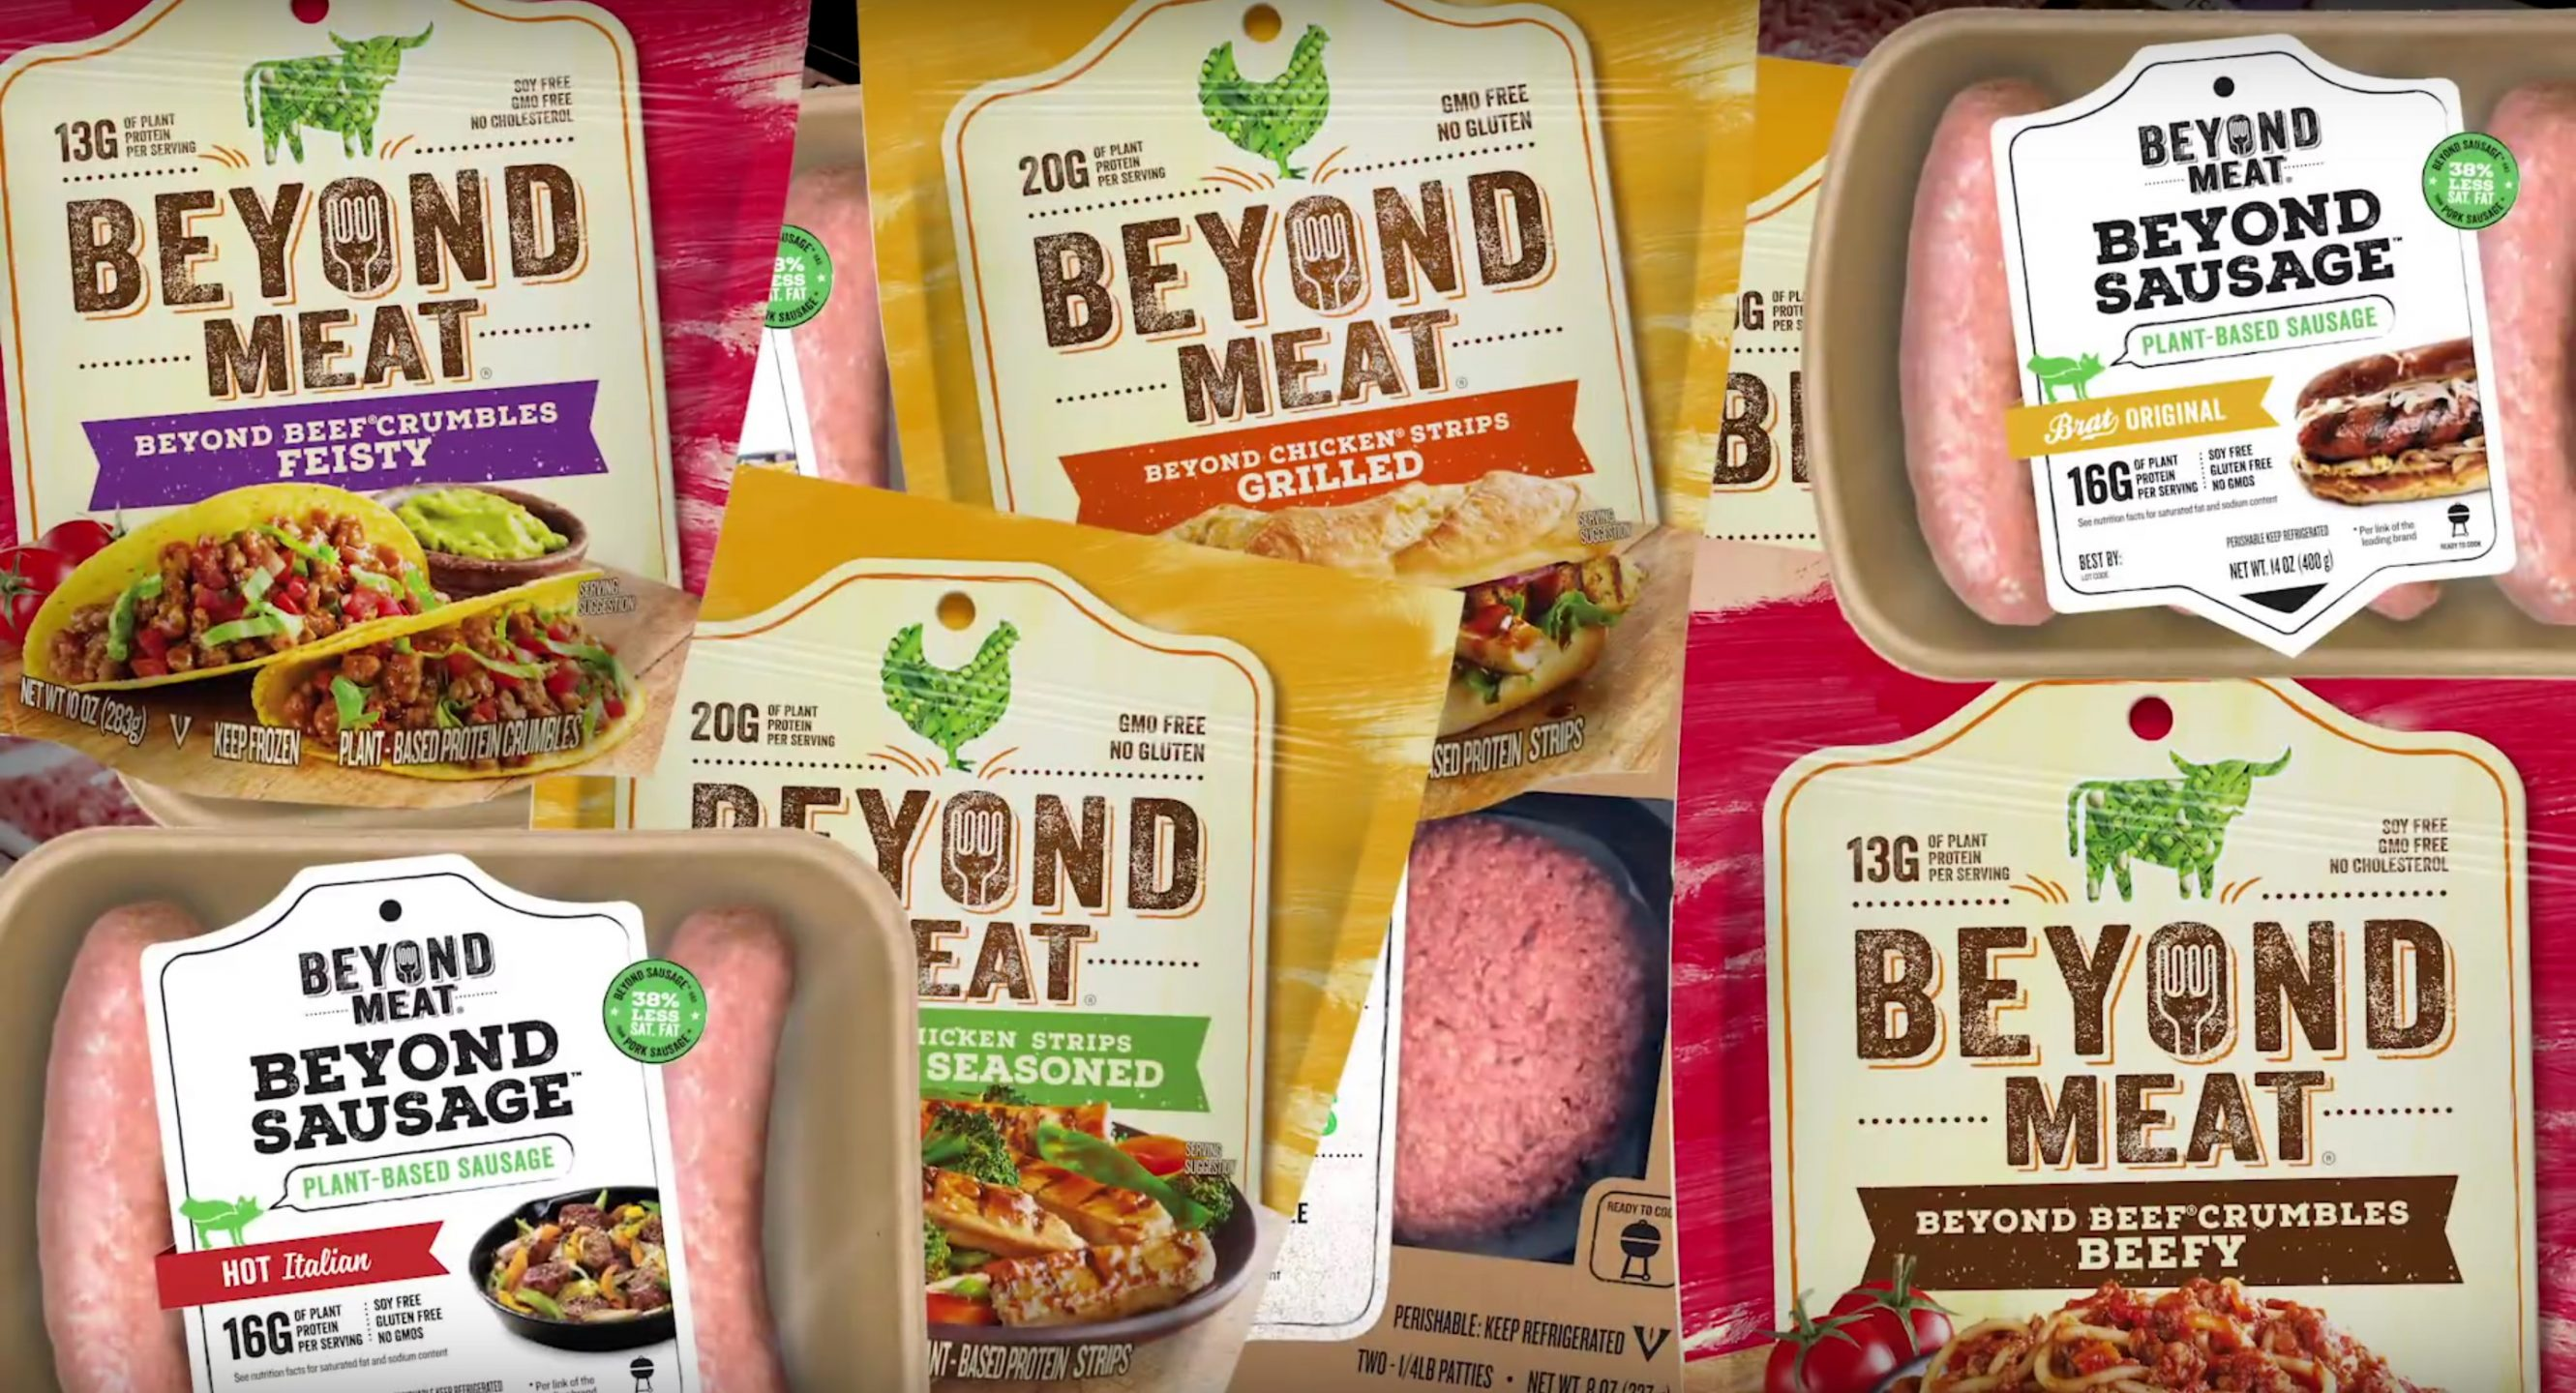 The Beyond Meat company